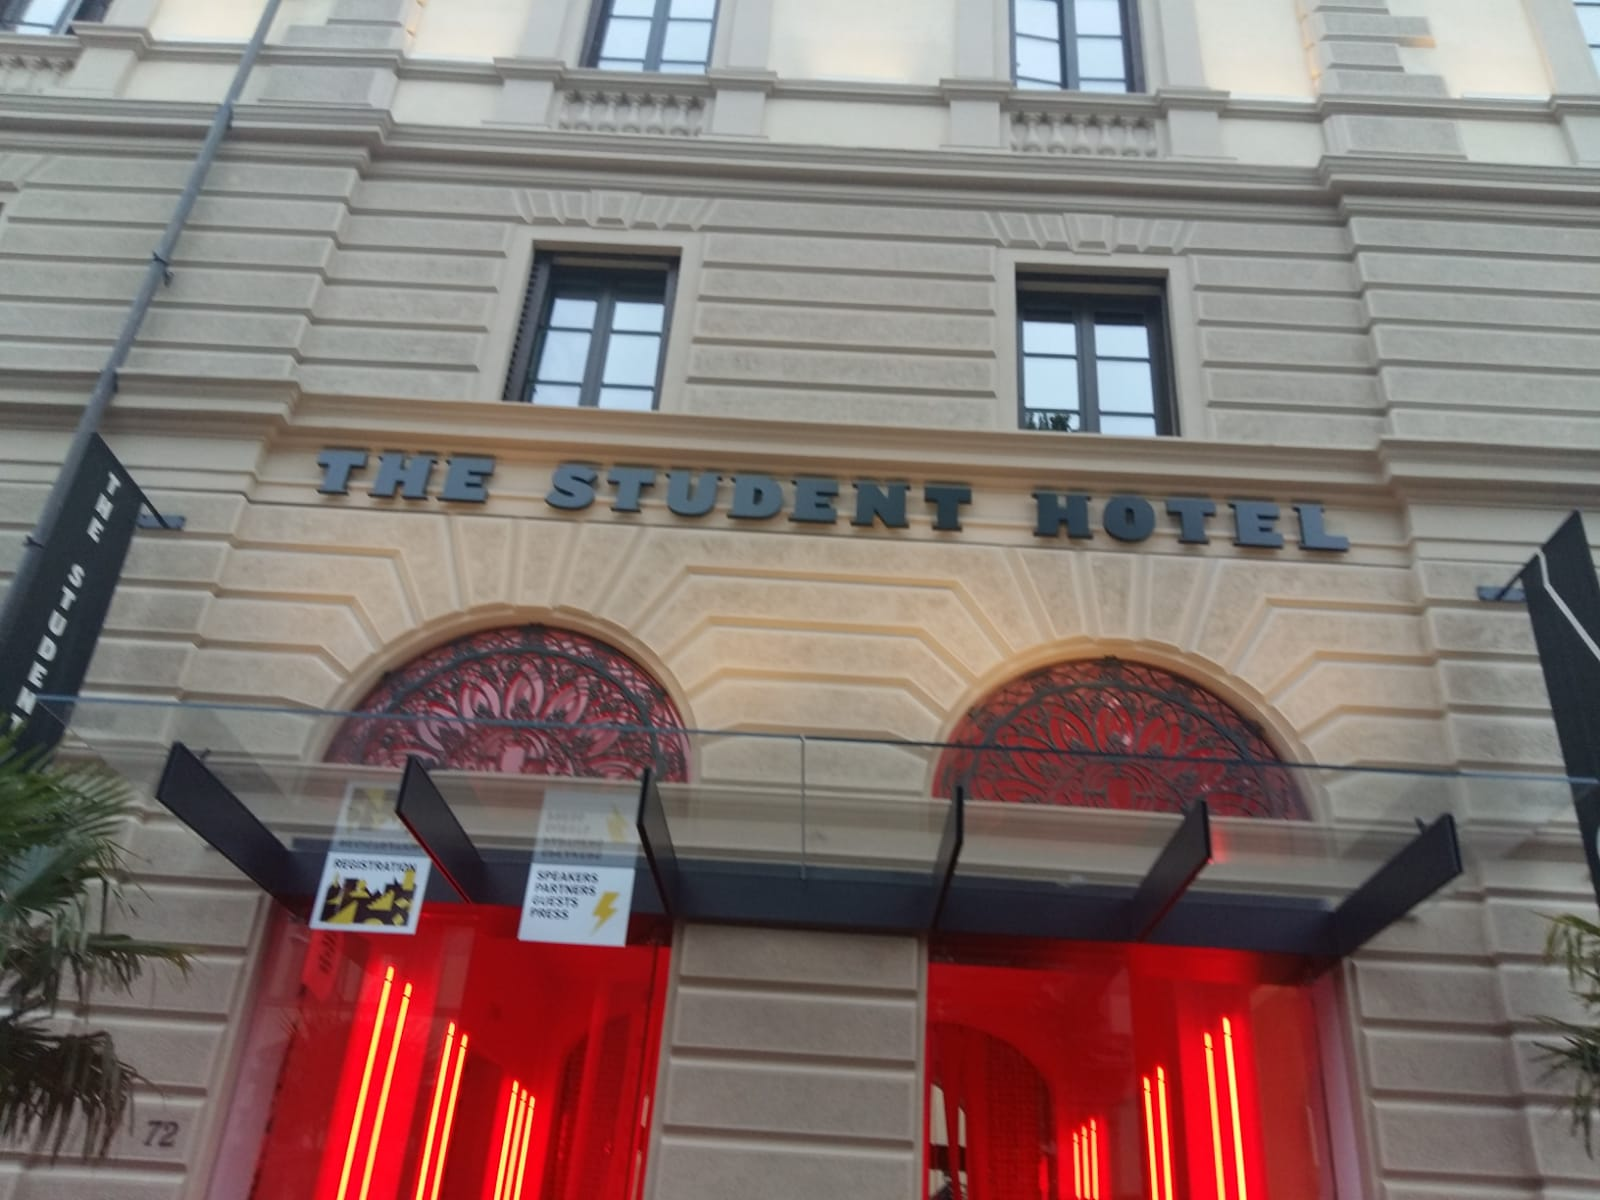 The Student Hotel opens today in Florence